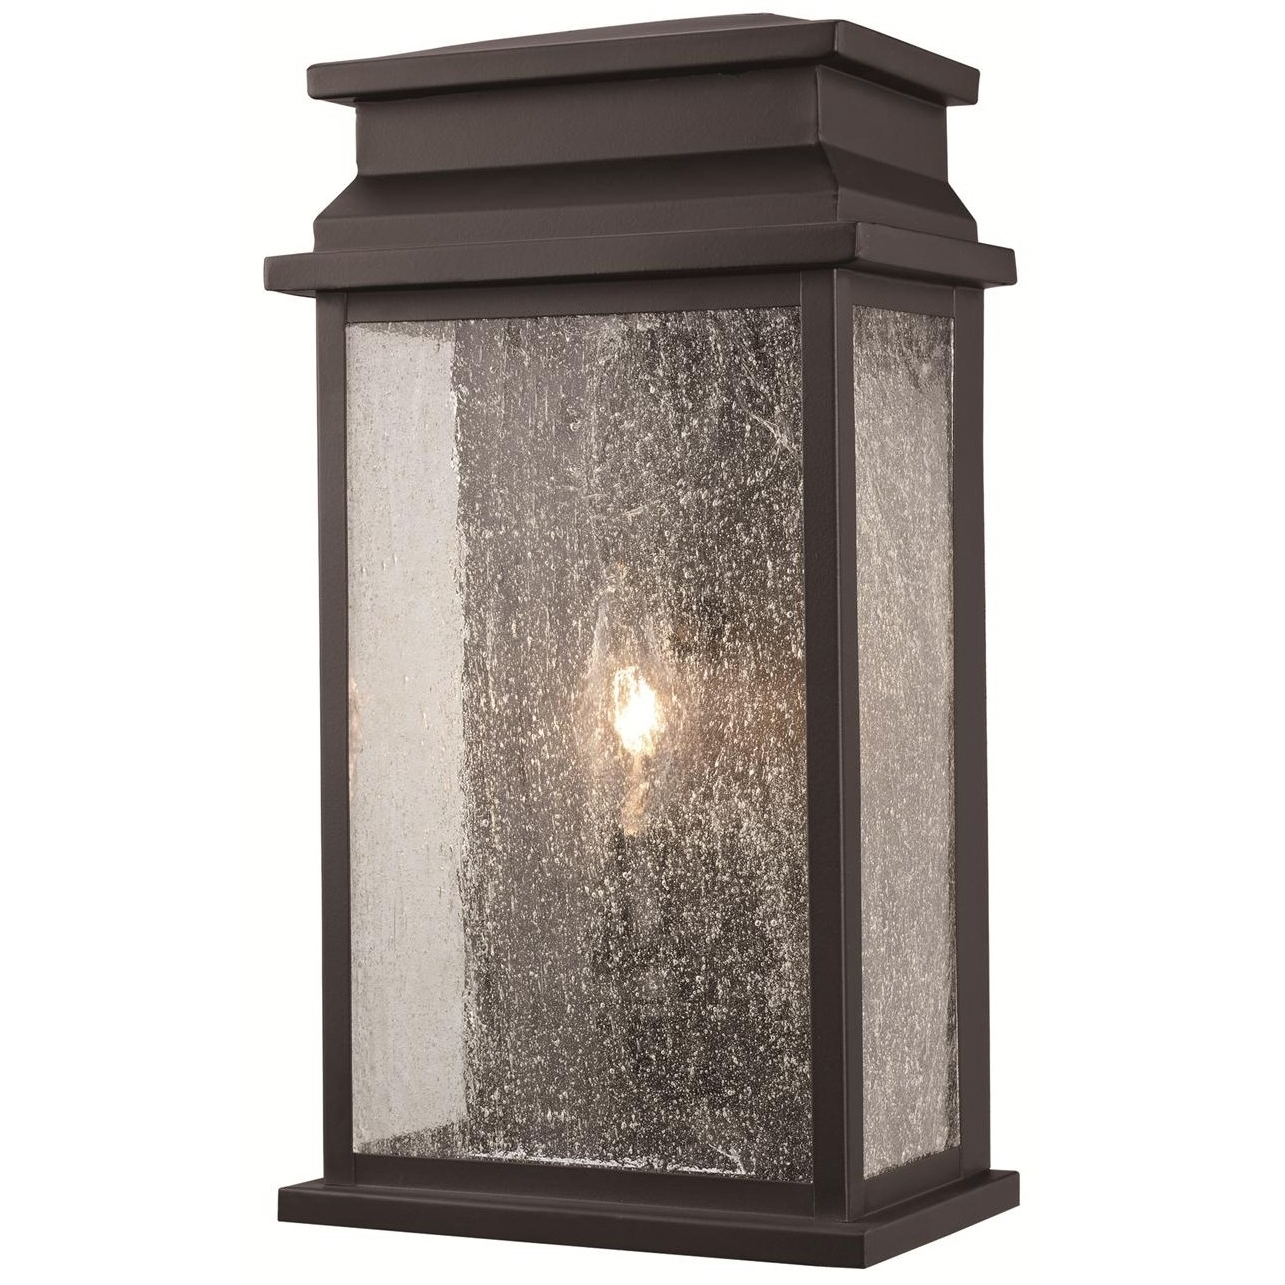 Outdoor Wall Lantern By Transglobe Lighting Within Preferred Trans Globe 40771 Bk Pocket 1 Light Wall Lantern In Black With (View 16 of 20)